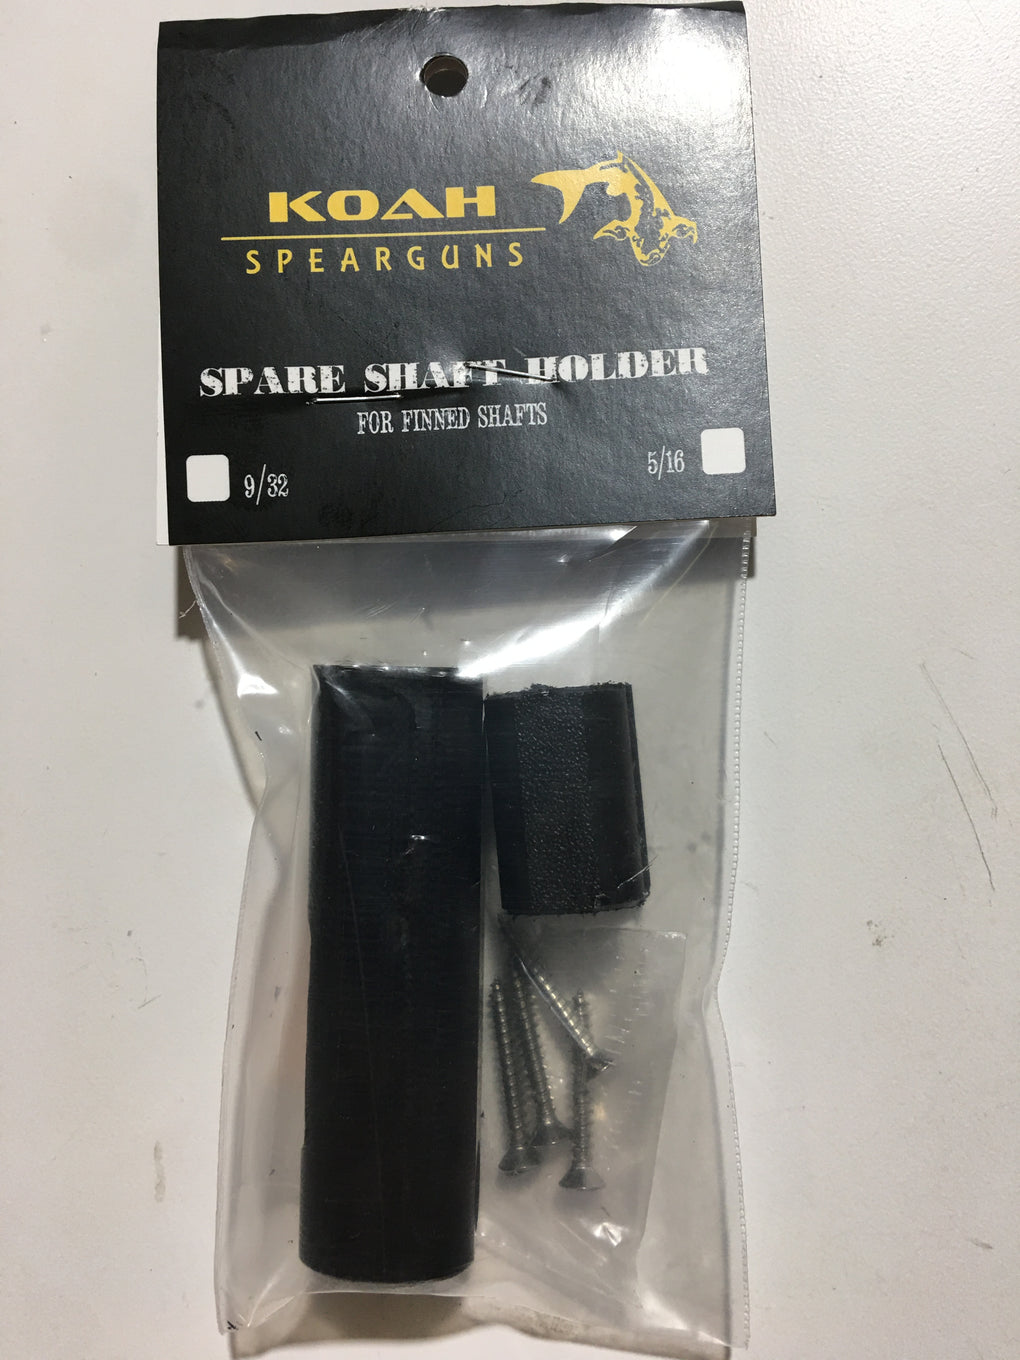 Koah Spare Shaft Holder( Front/Rear) - Spear Gods